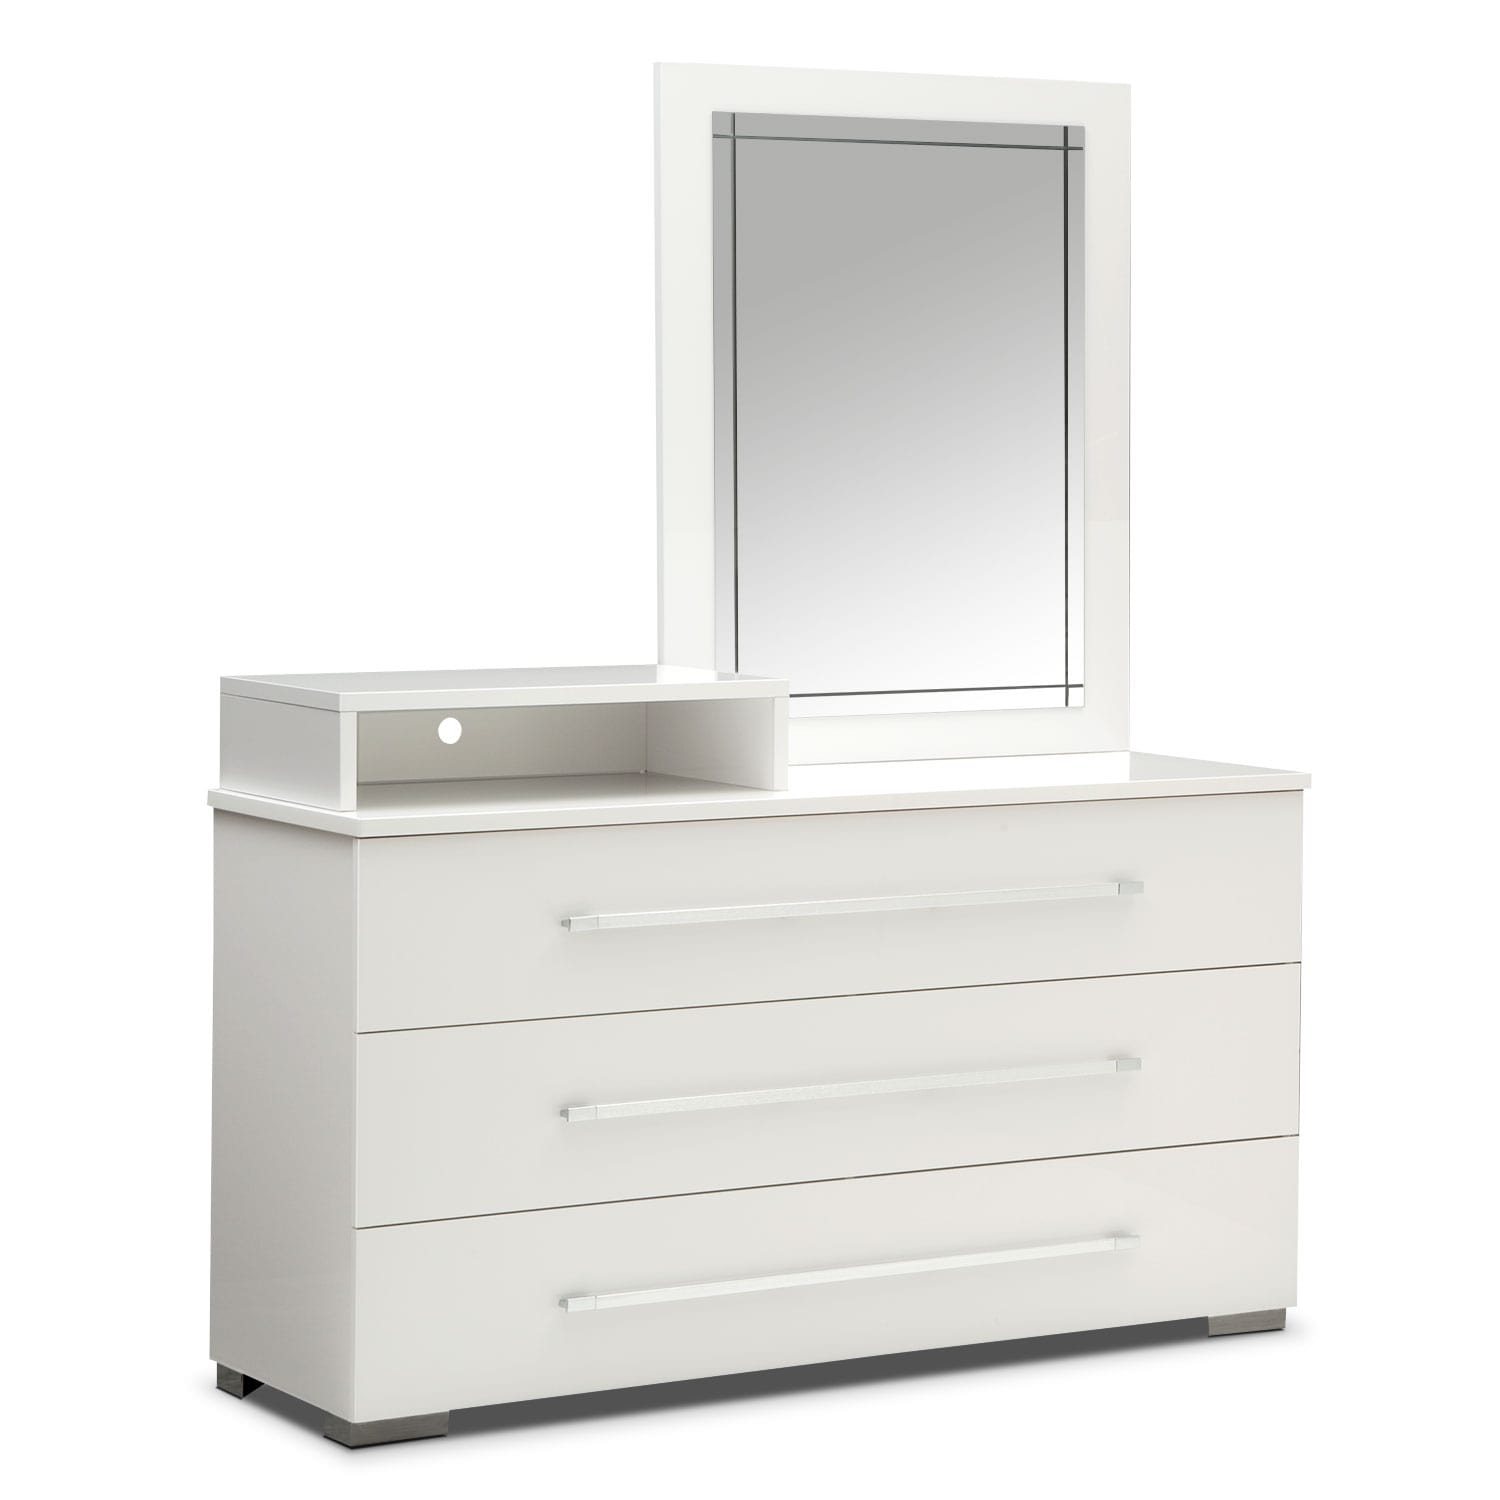 Bedroom Furniture - Dimora Media Dresser and Mirror - White